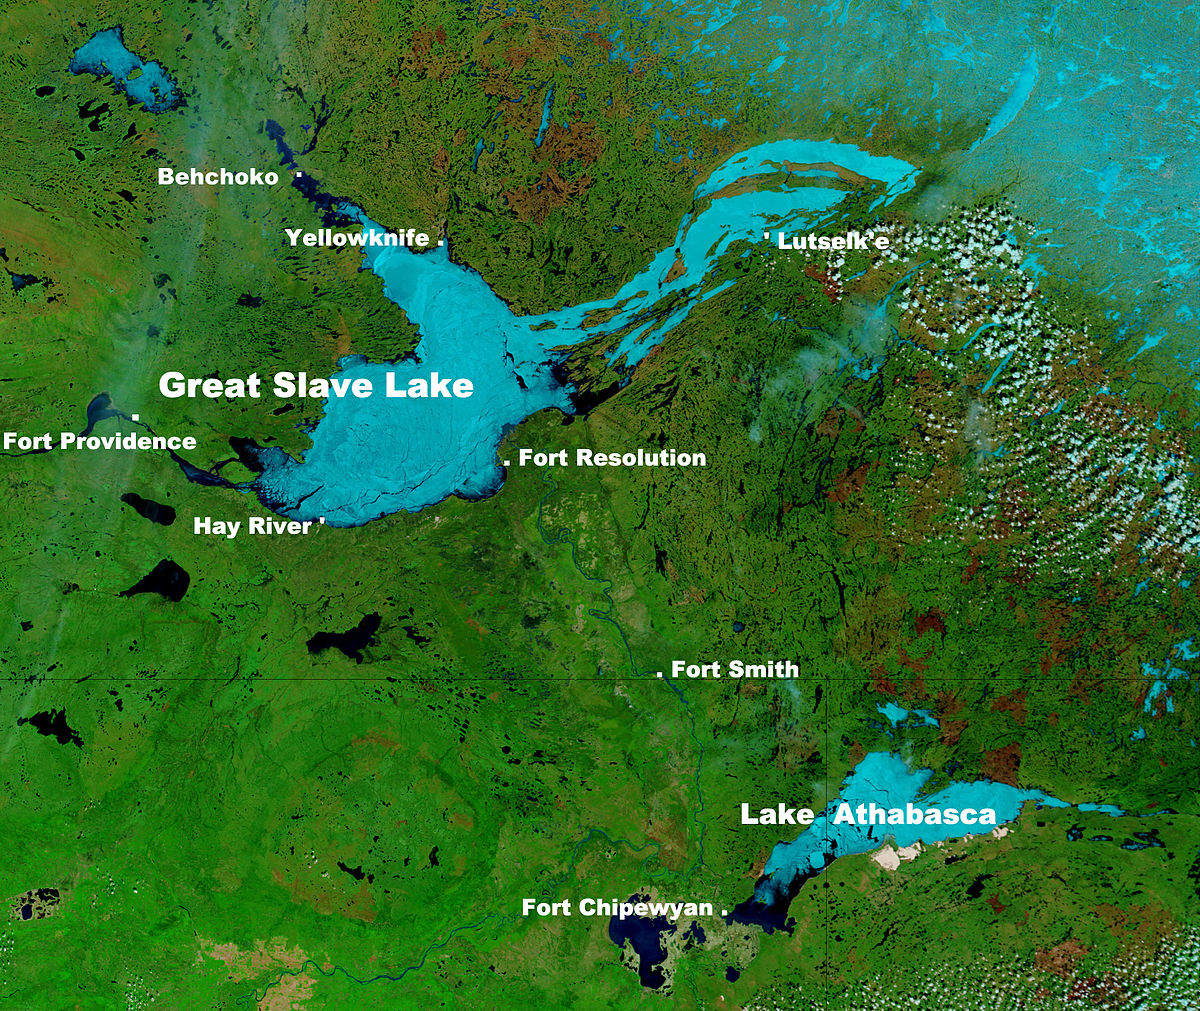 Great Slave Lake Wikipedia - The great lakes on us and canada map